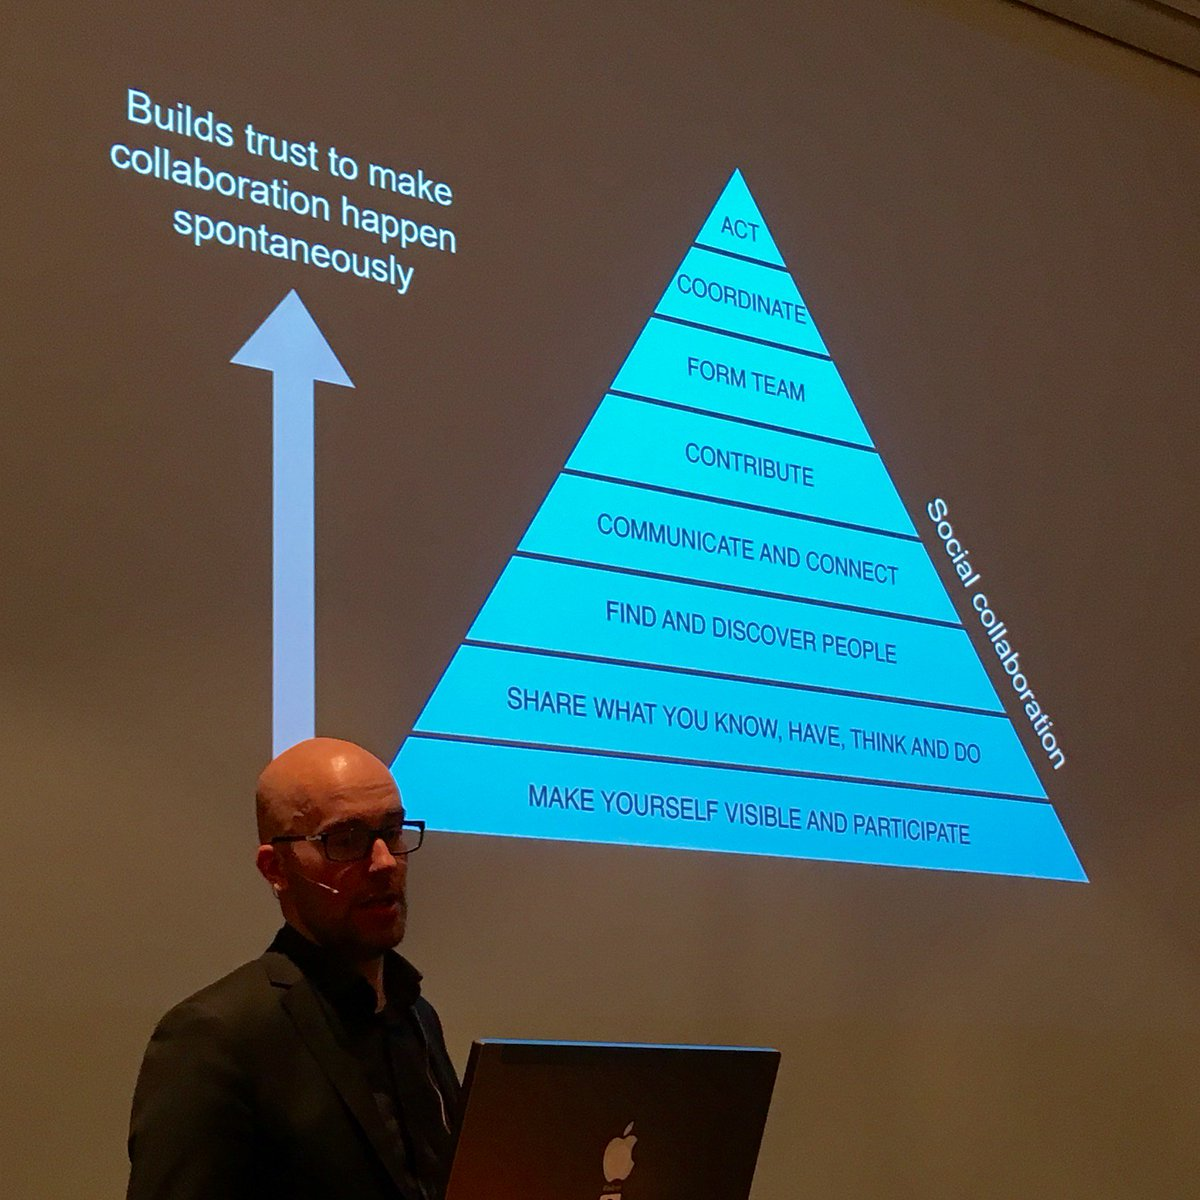 The collaboration pyramid by @OscarBerg at #IEC16 https://t.co/ZXltY7Plit